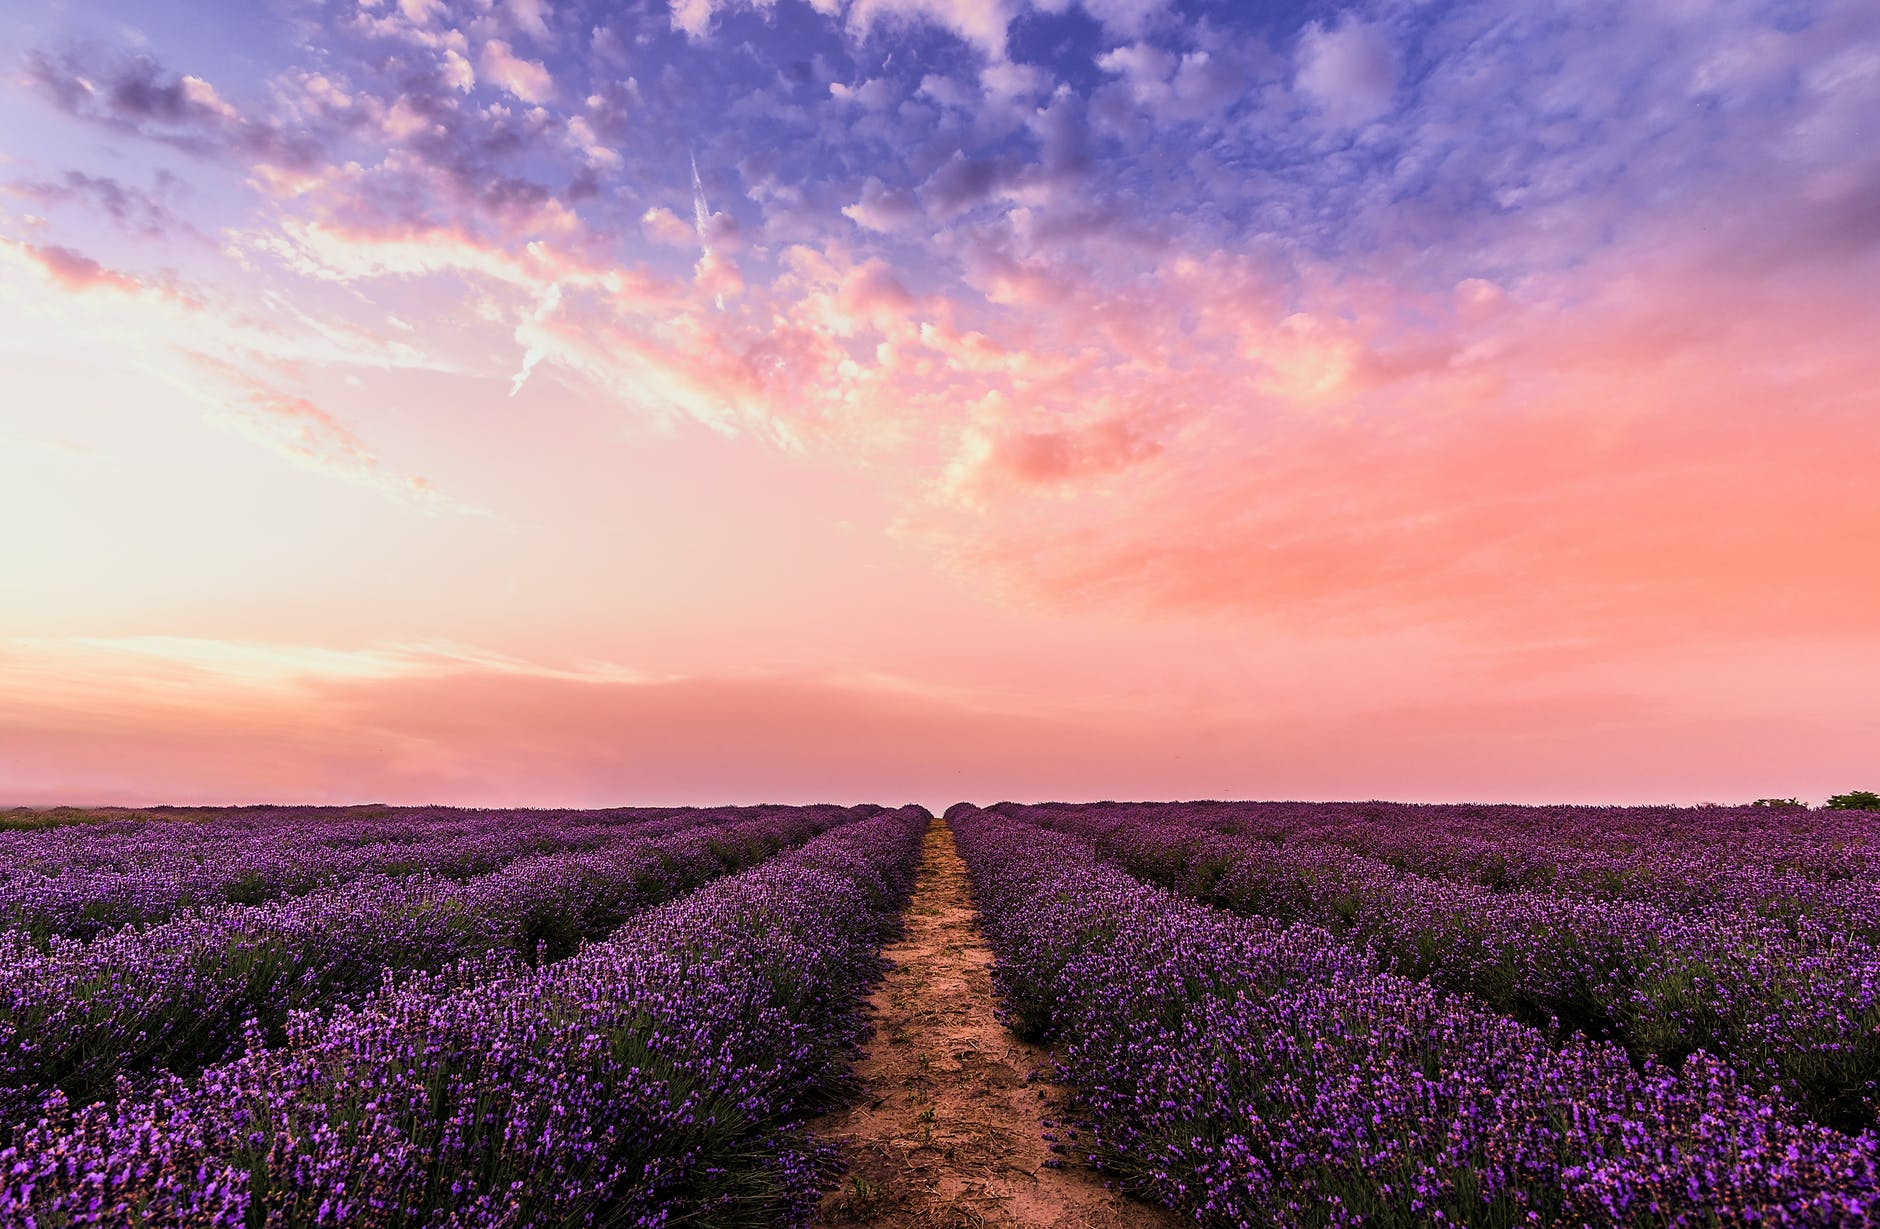 This image shows a Lavender field in sunset